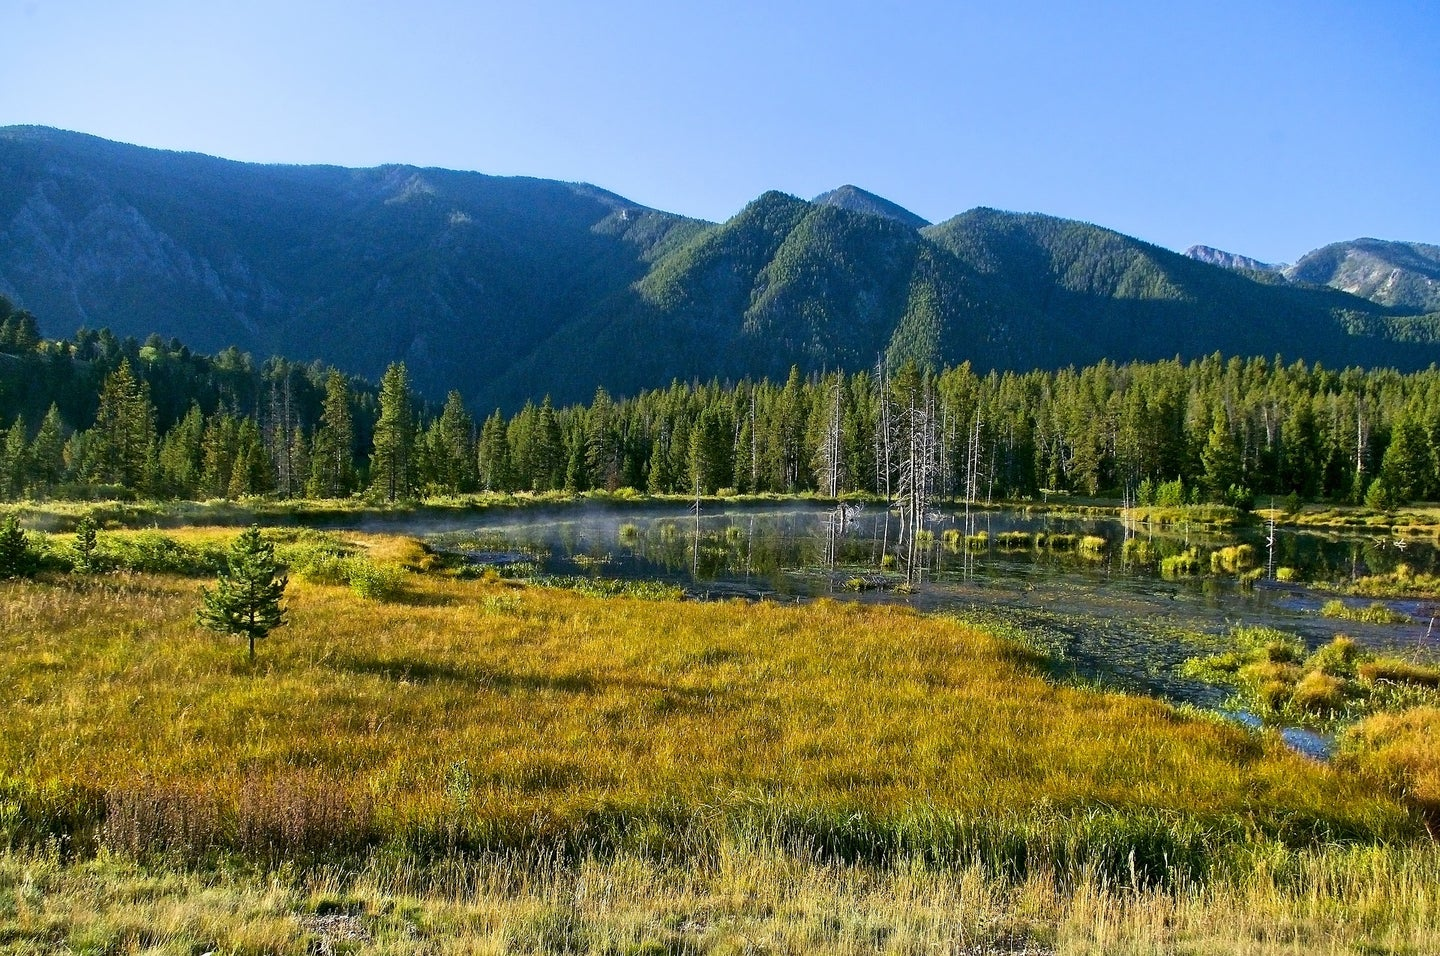 A landscape photo of the Madison River running through a mountainside.